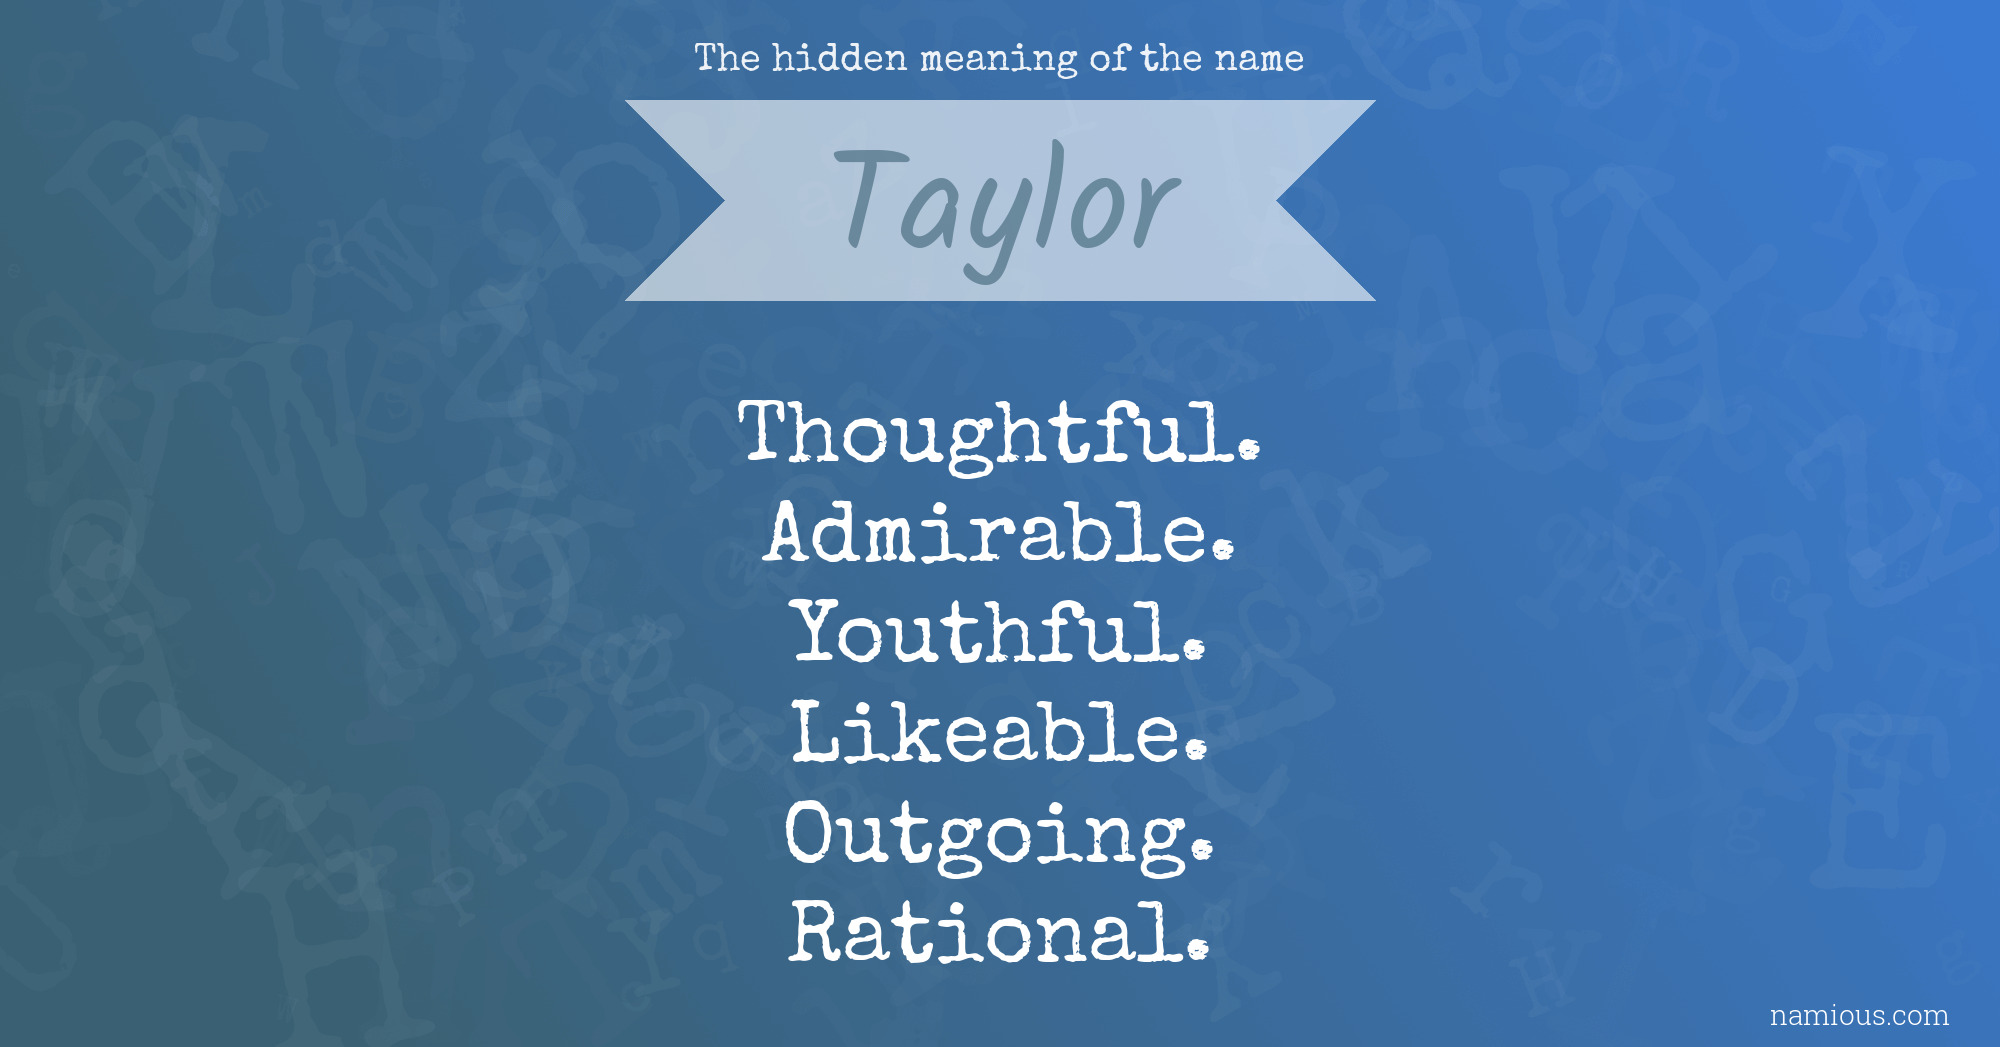 The hidden meaning of the name Taylor   Namious